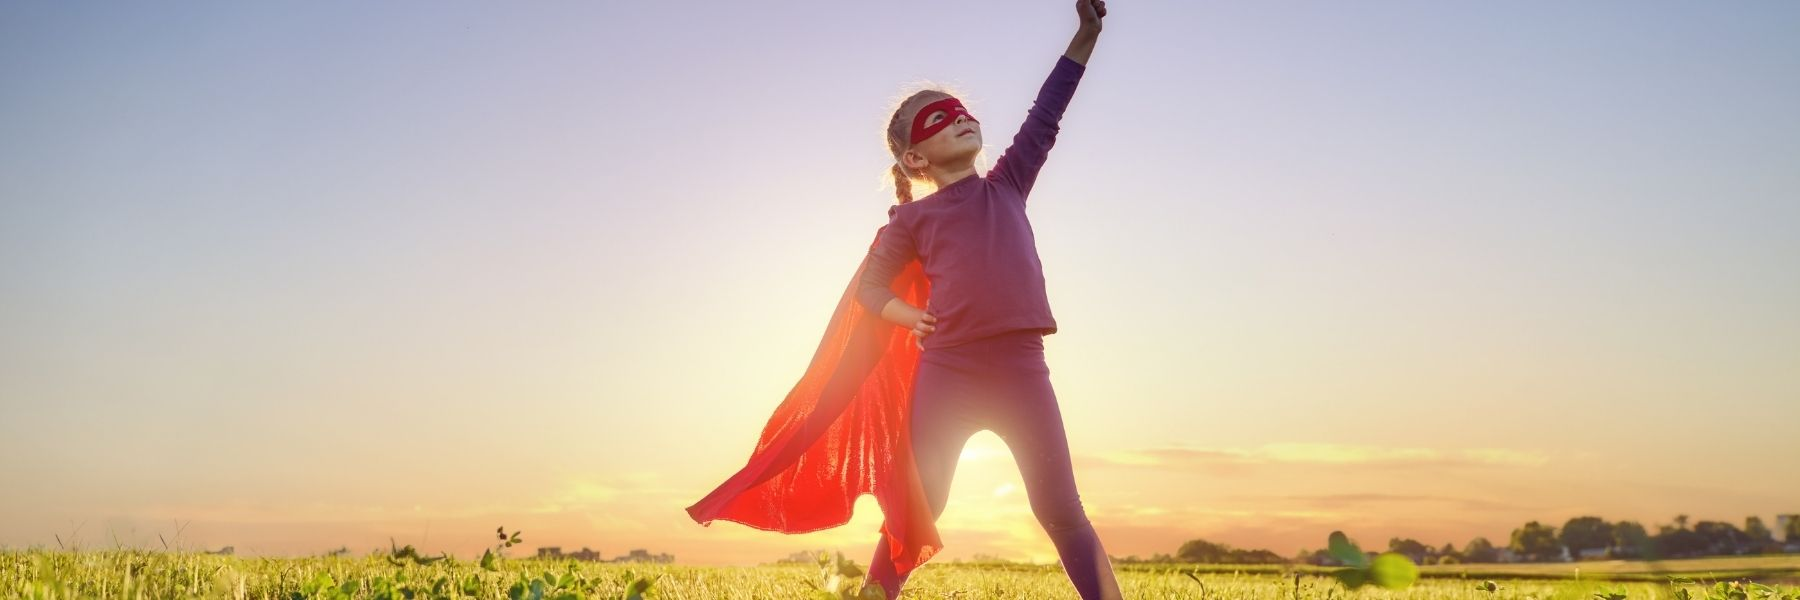 Young girl in a superhero outfit in front of sun